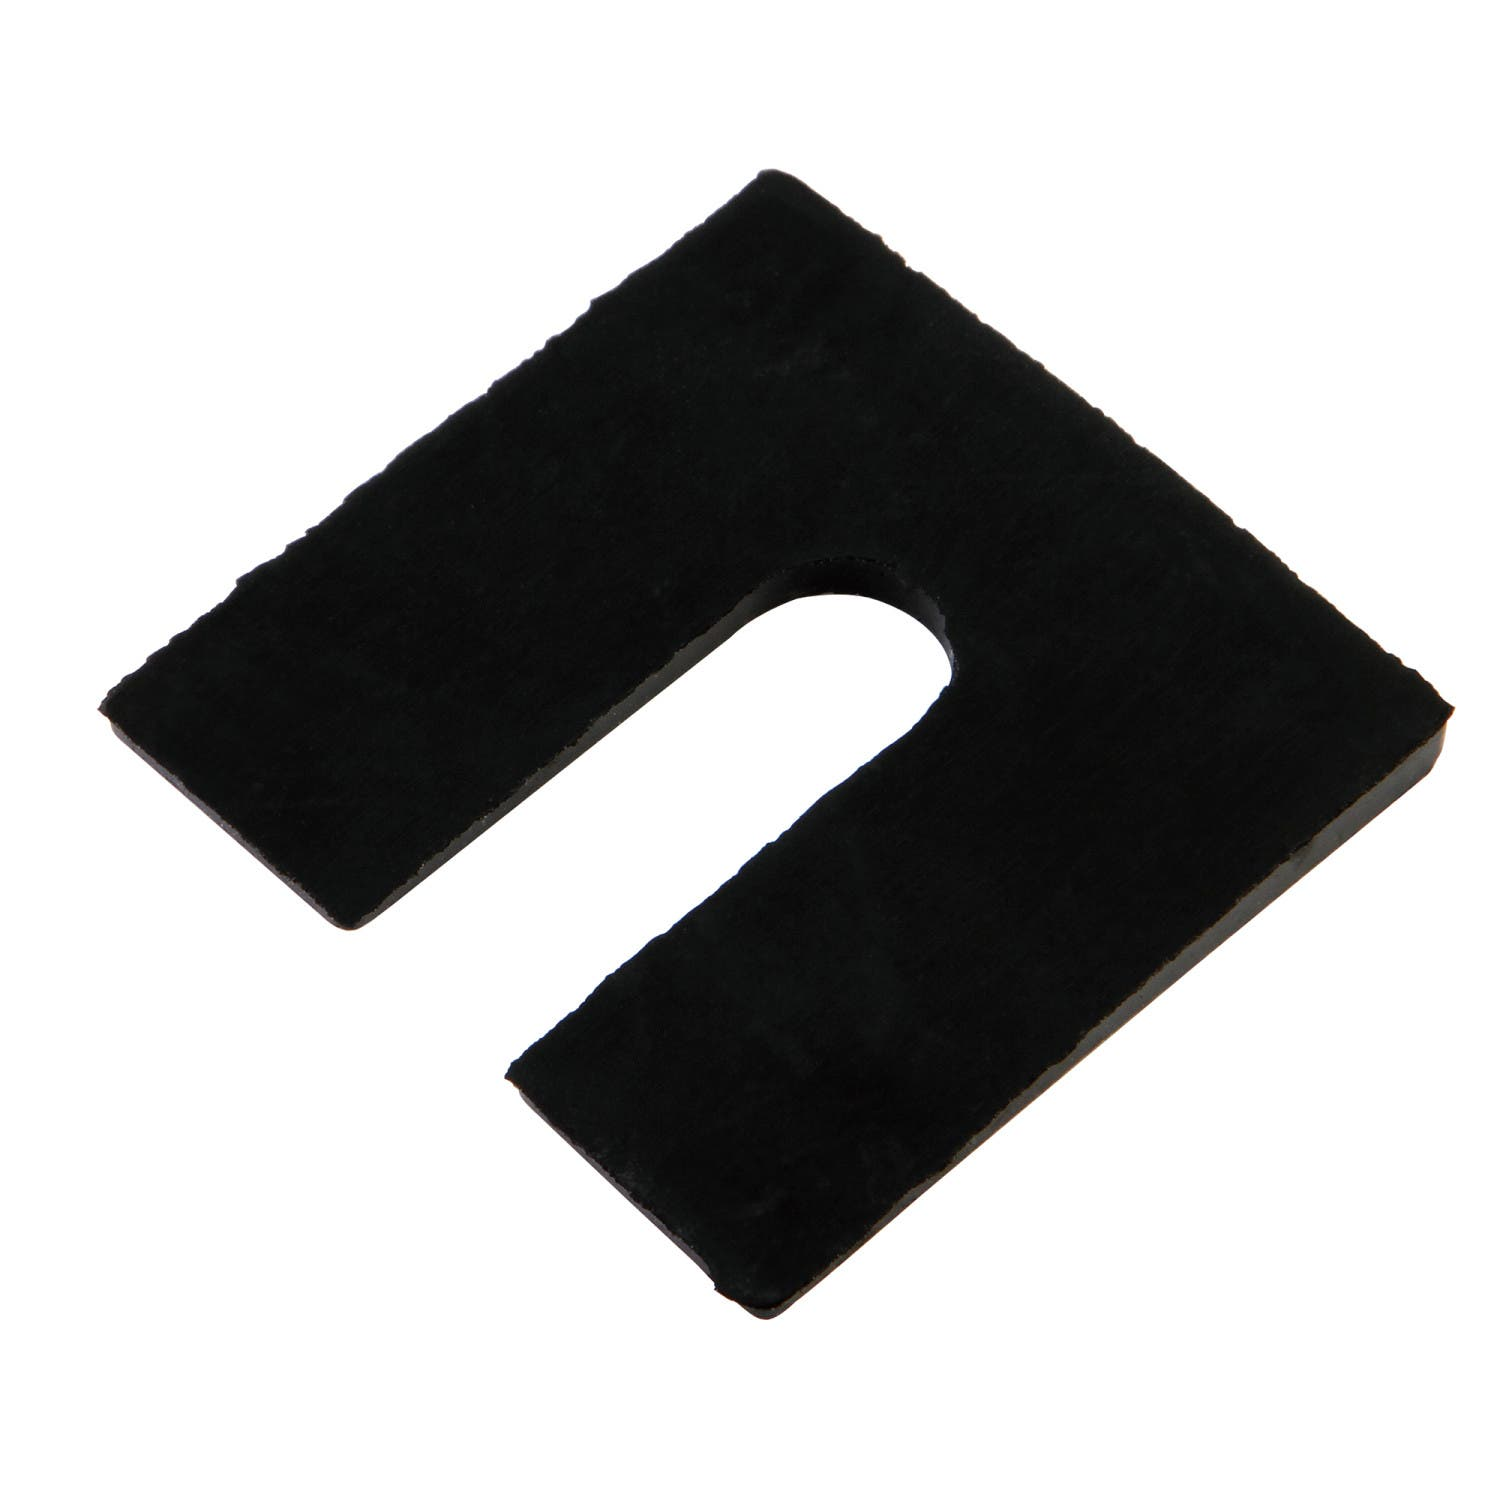 Kingston Brass VCTZHDWRSH Rubber Shim Slant Washer for Tub Feet, Black